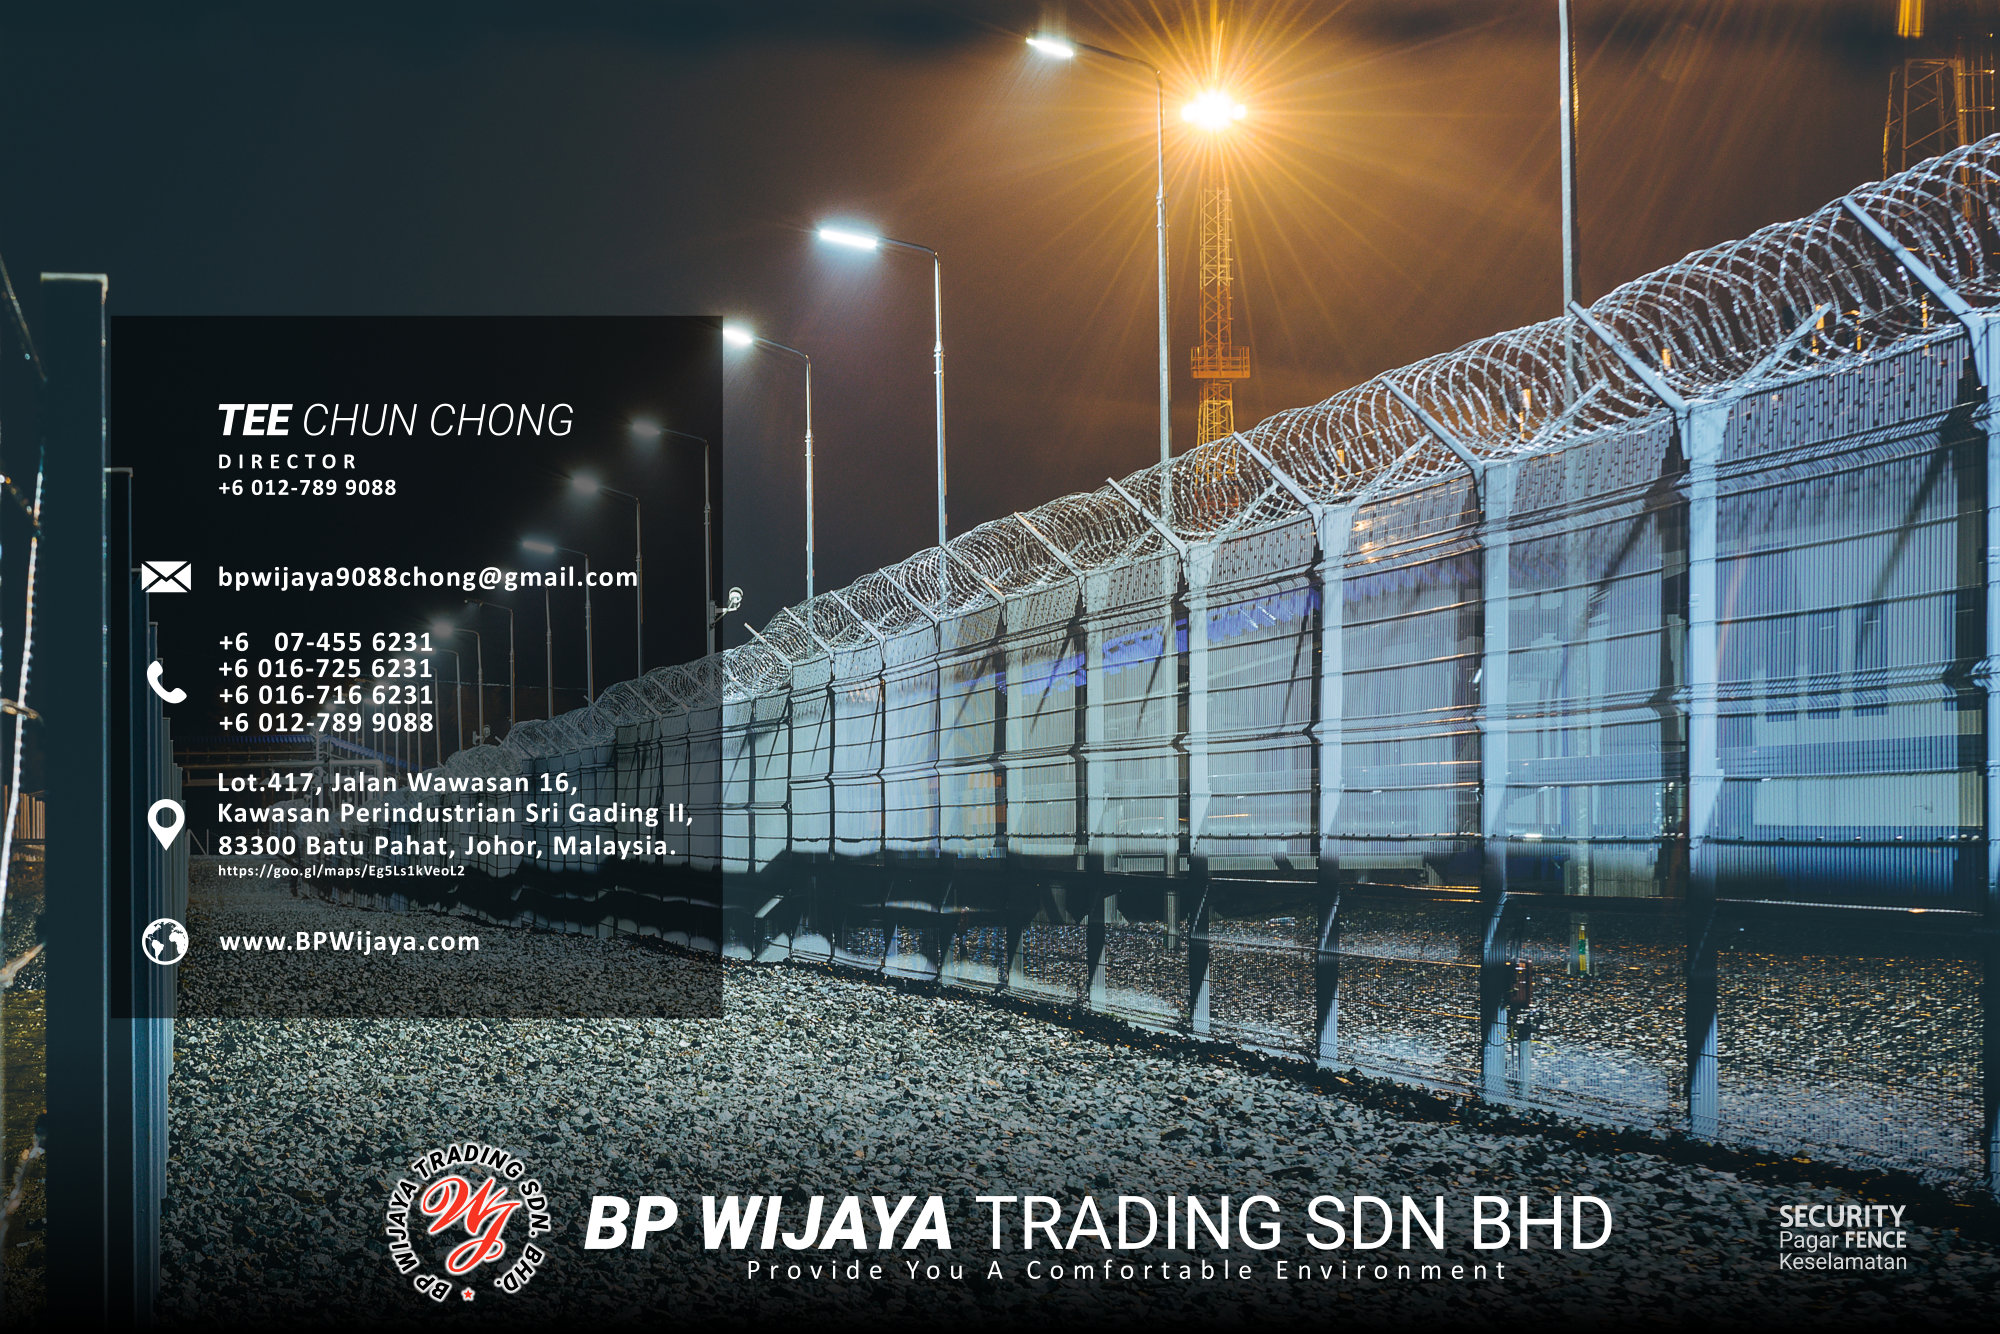 Kuala Lumpur Security Fence Supply we are manufacturer of security fence BP Wijaya Trading Sdn Bhd Safety Fence Building Materials for Housing Construction factory fence house beauty fence A03-029